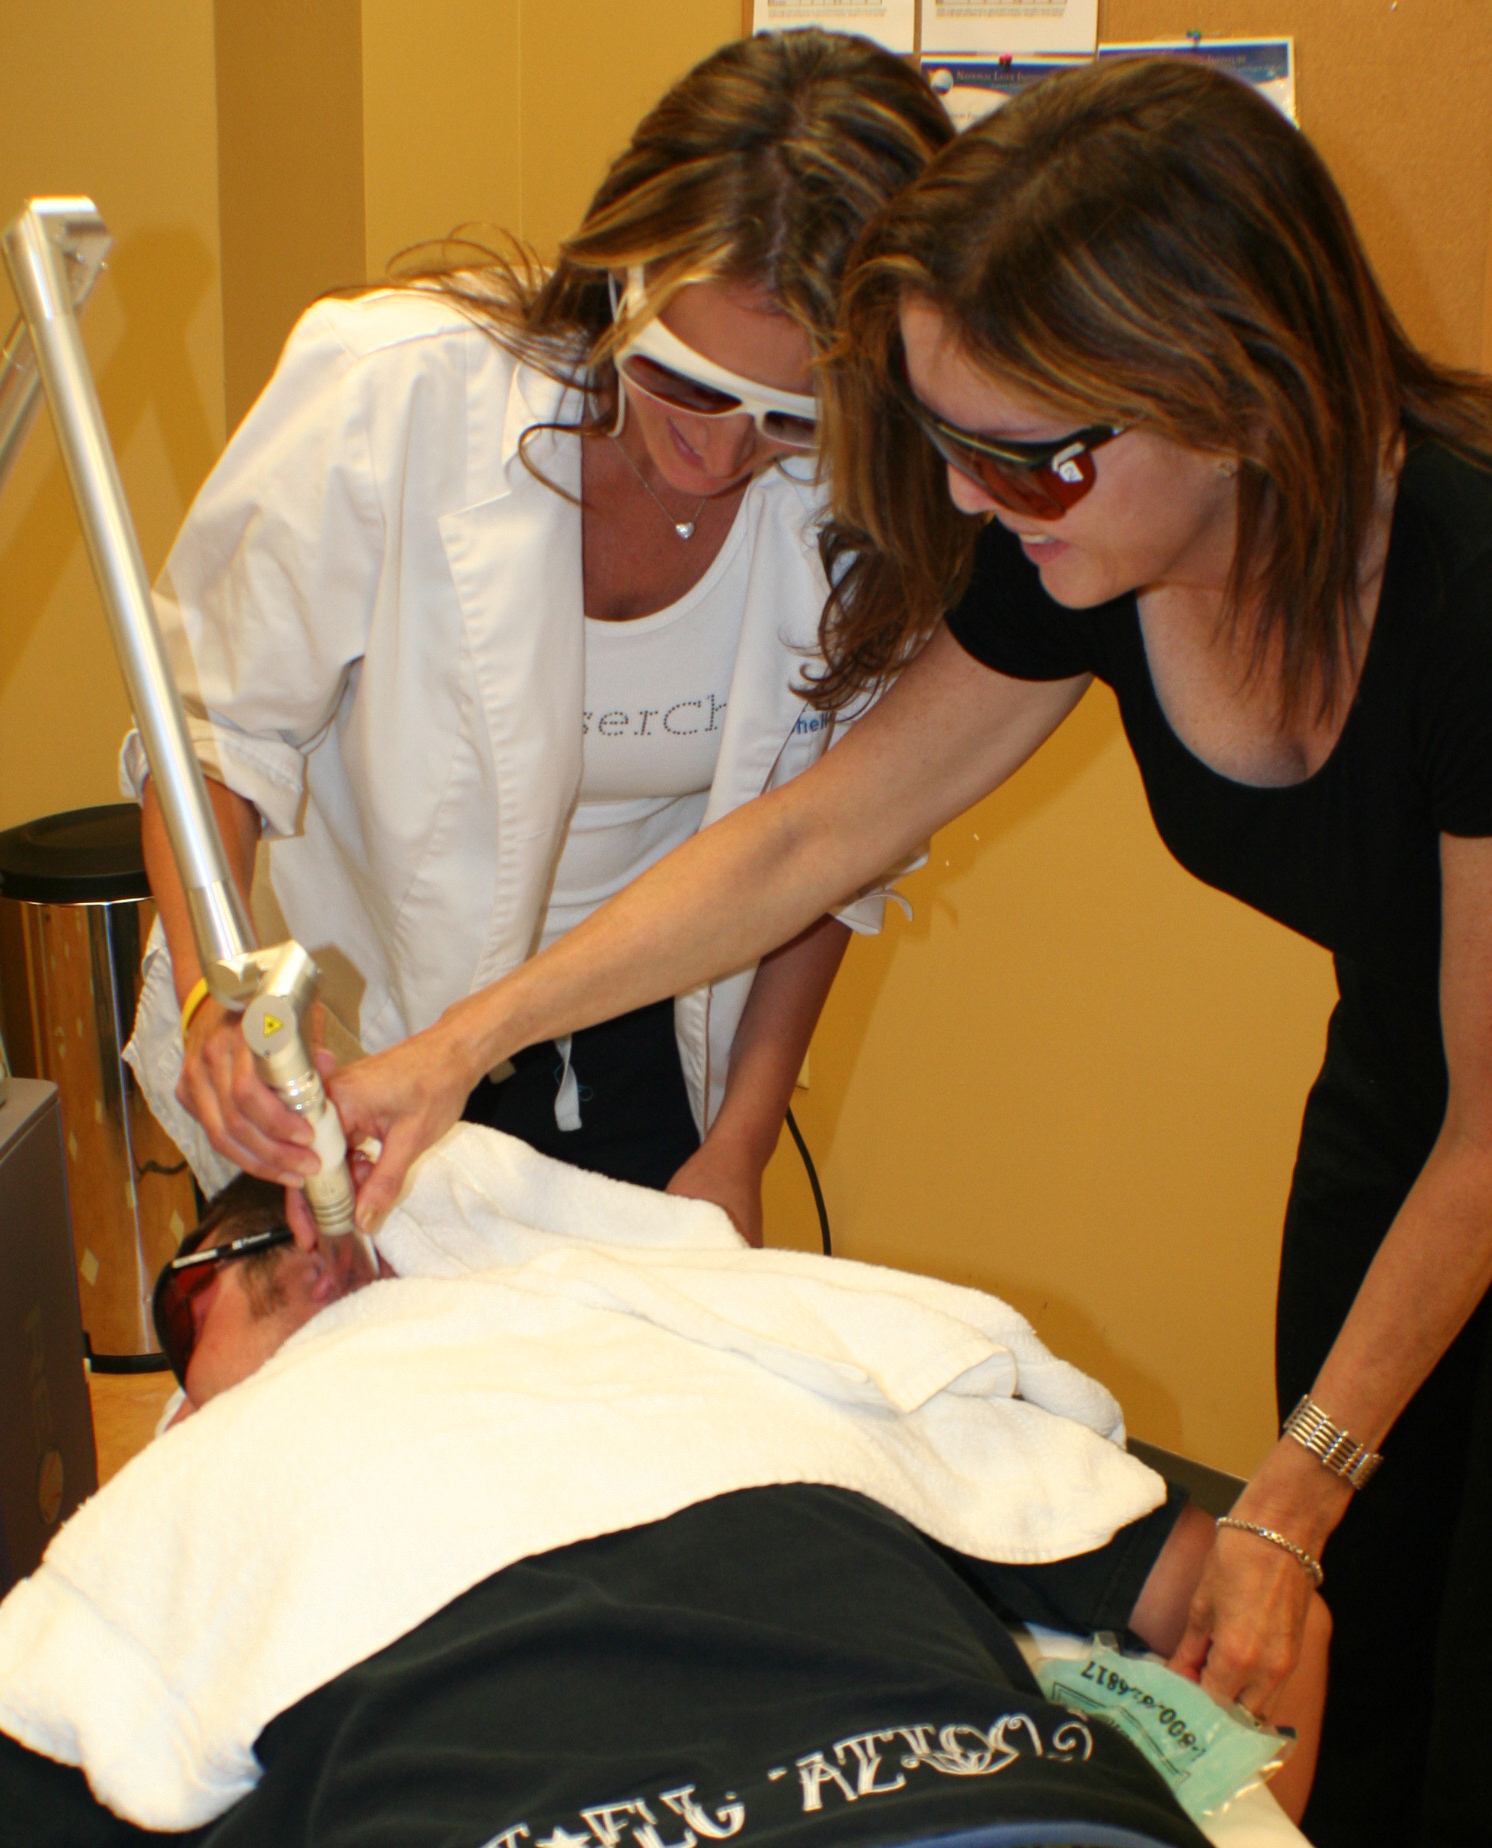 Tattoo removal training cosmetic laser school nli for Laser tattoo removal certification